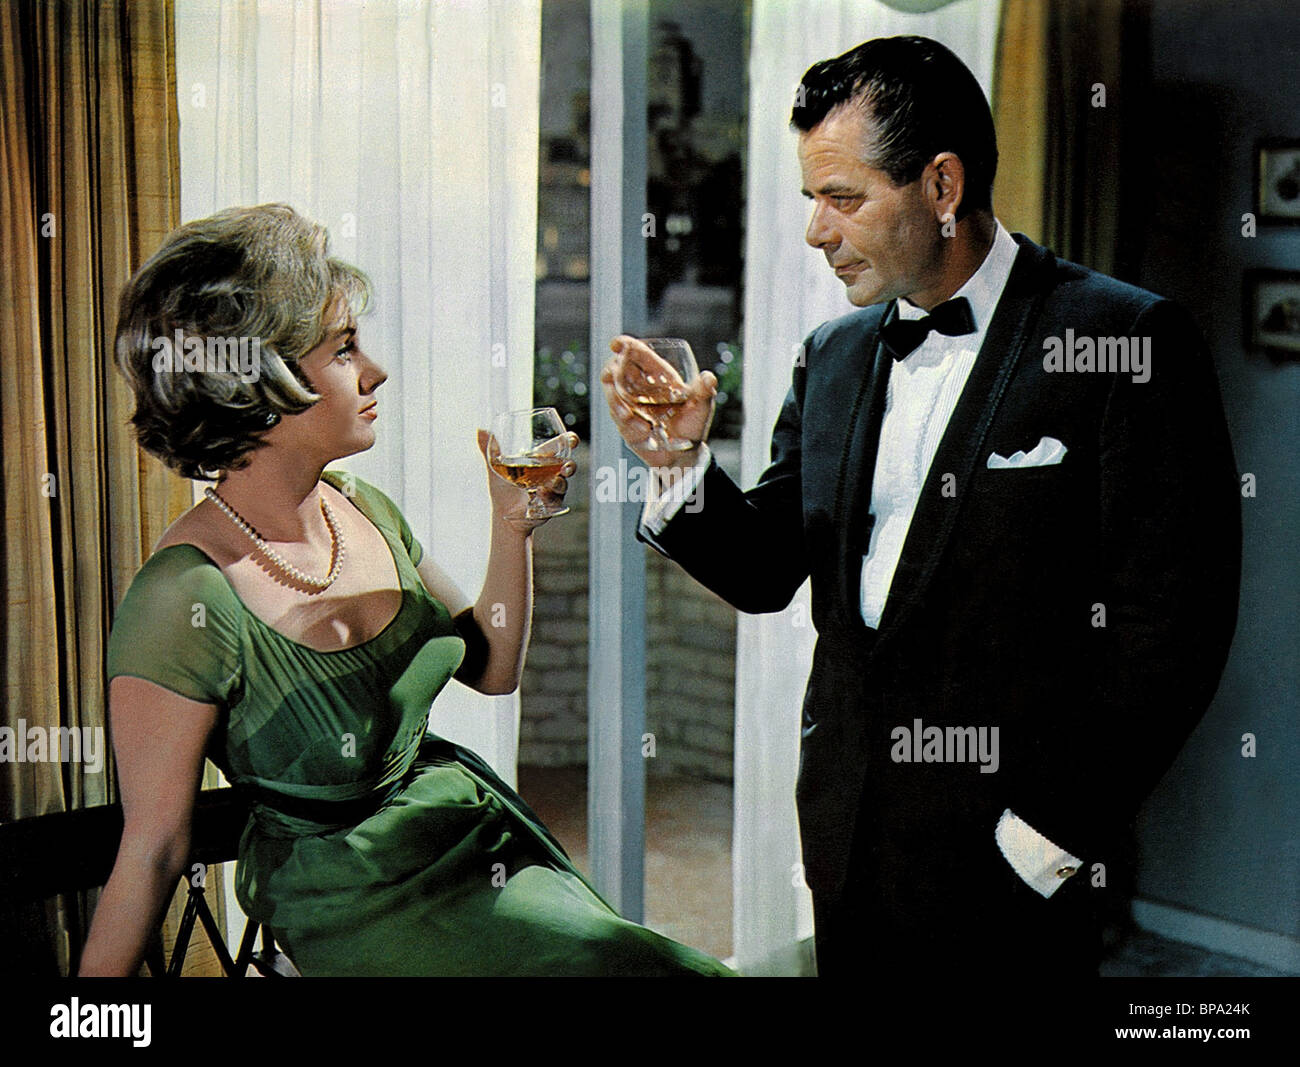 SHIRLEY JONES GLENN FORD THE COURTSHIP OF EDDIE'S FATHER (1963) - Stock Image